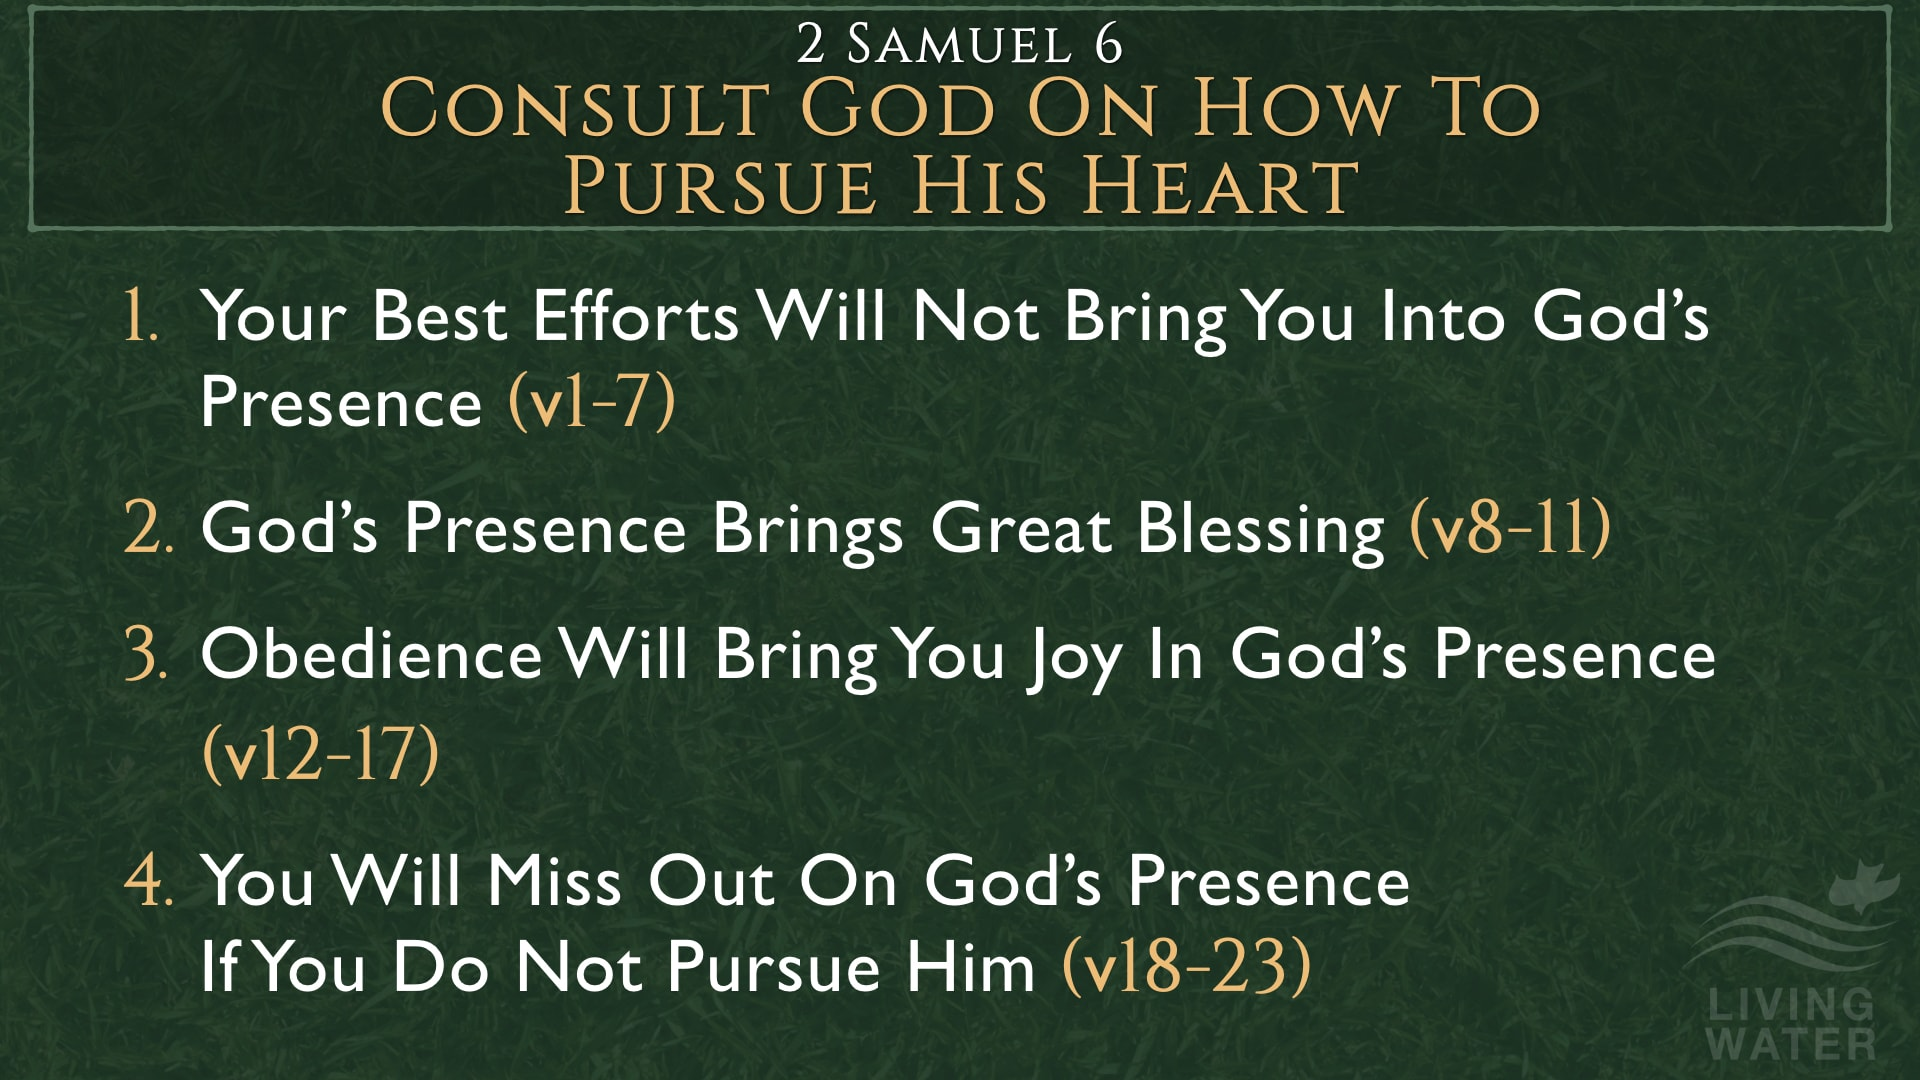 2 Samuel 6, Consult God On How To Pursue His Heart